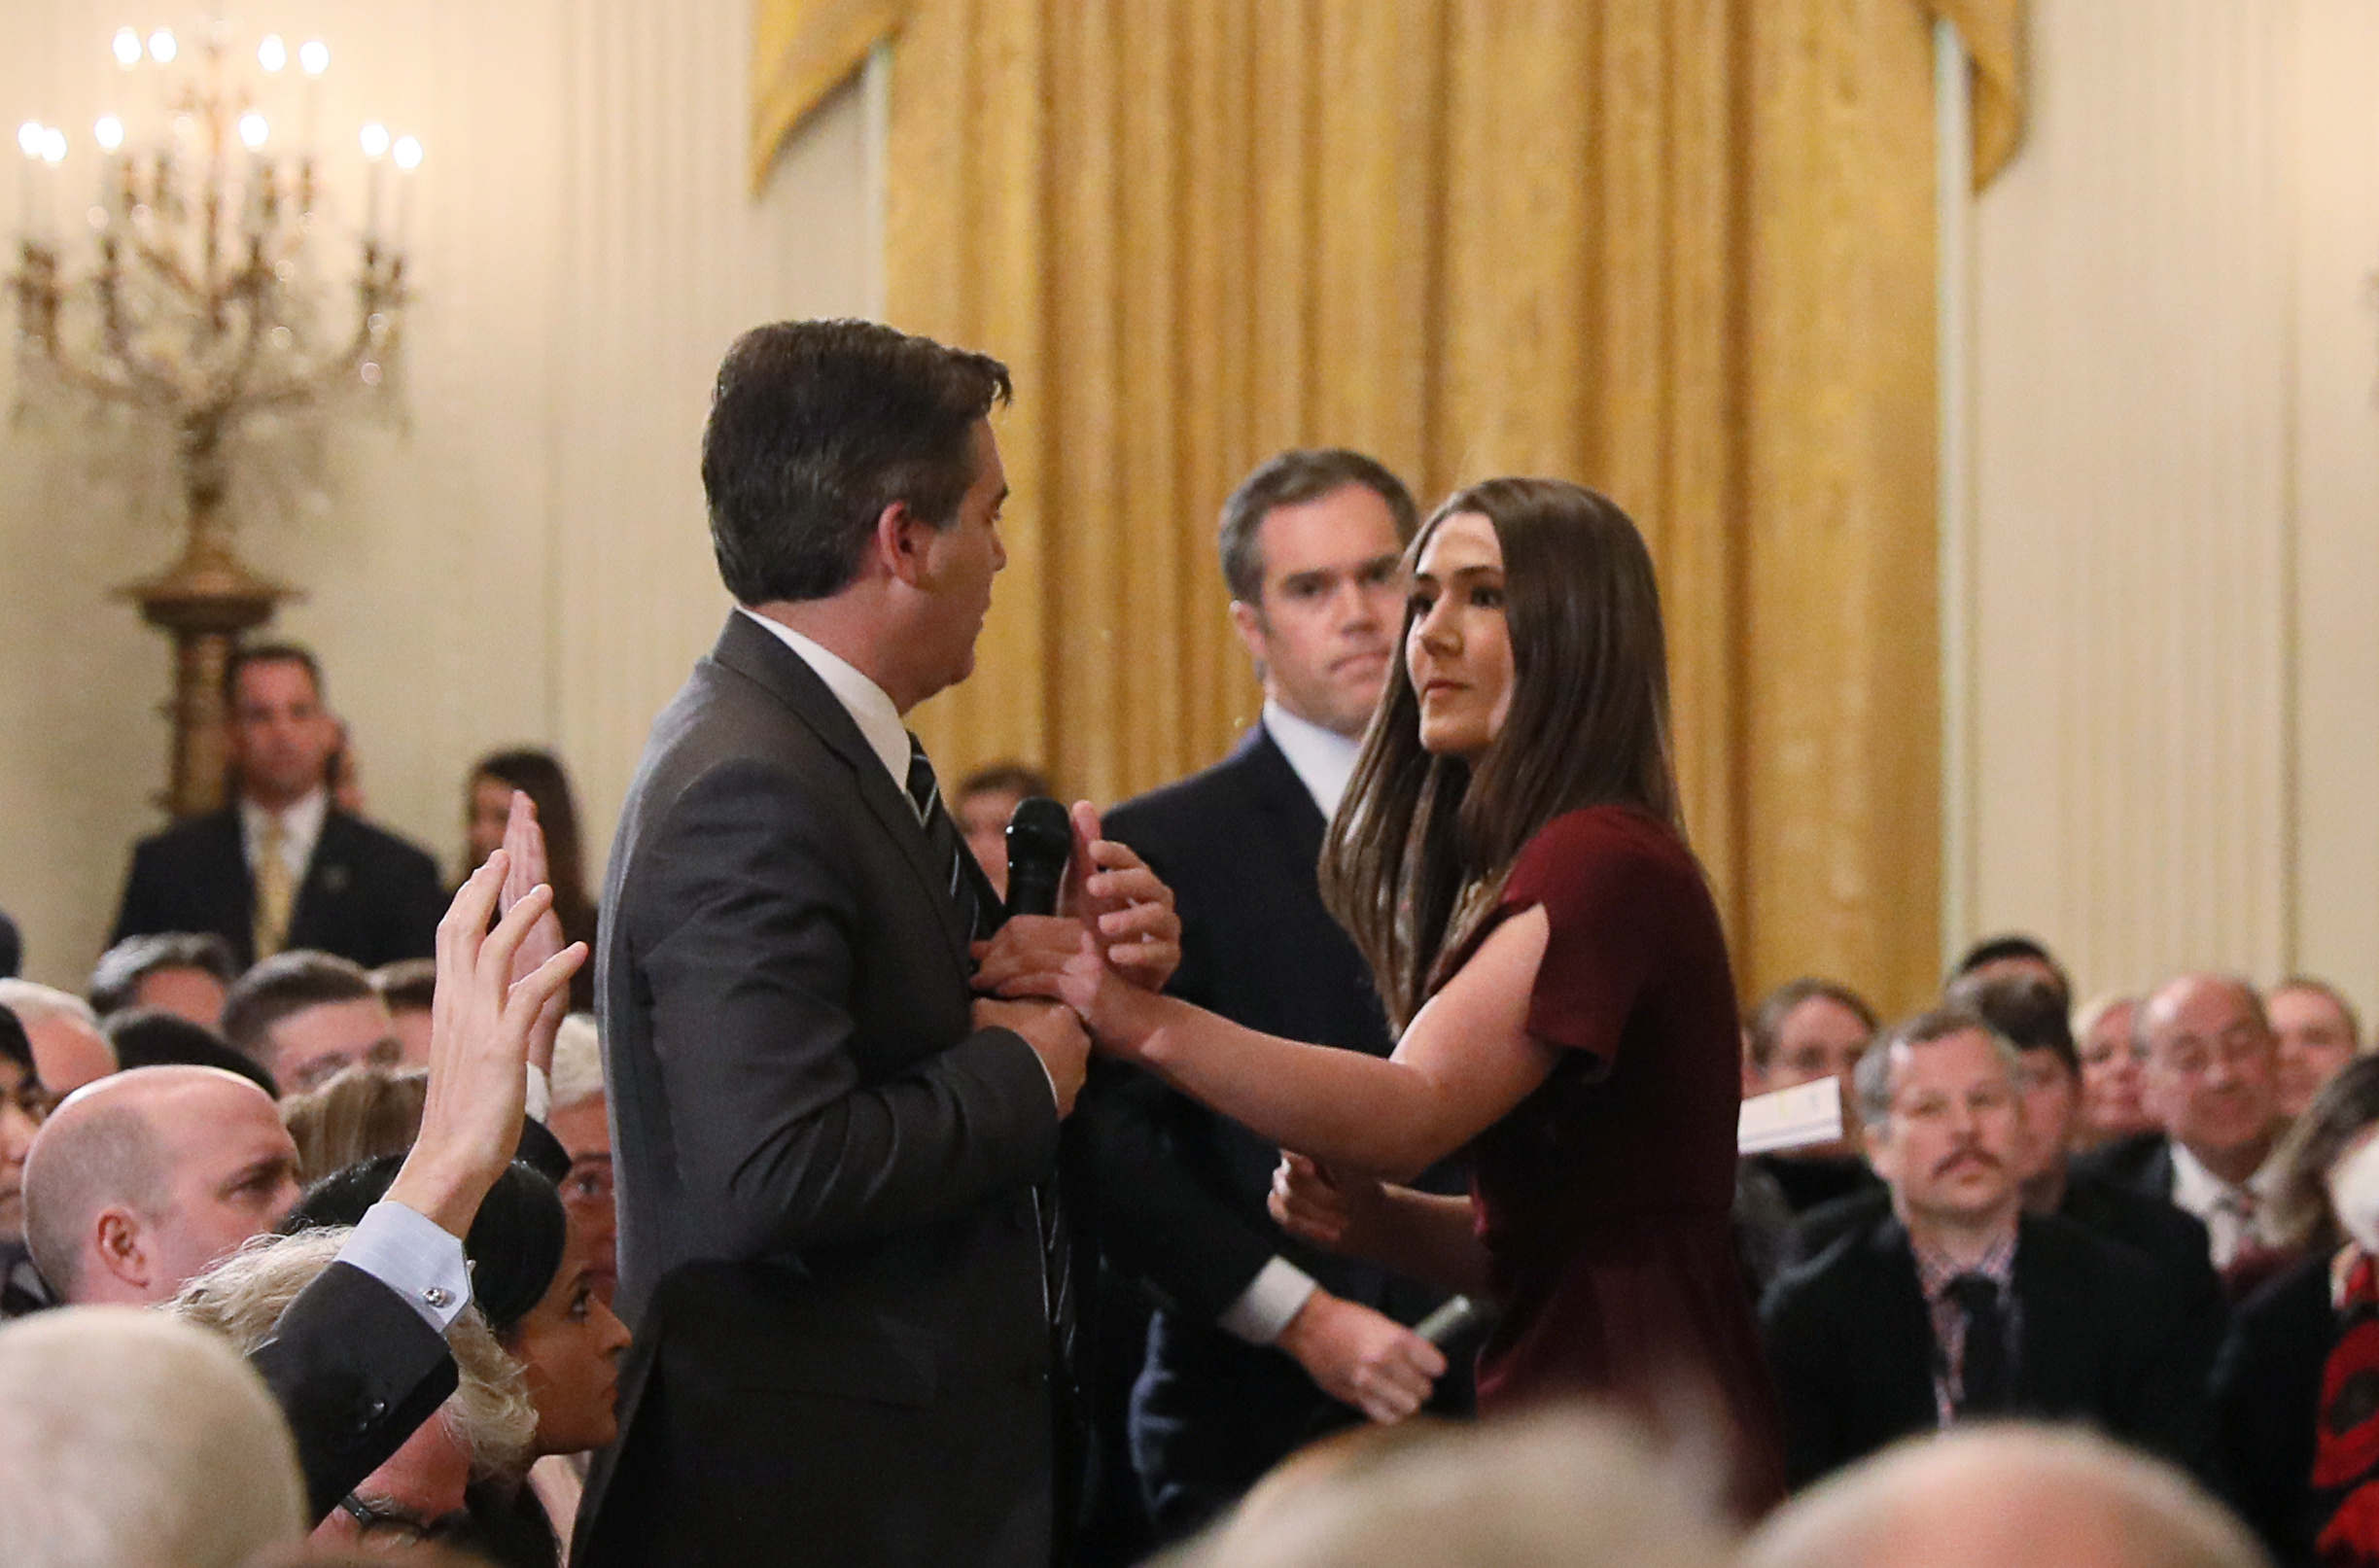 A White House intern reaches for and tries to take away the microphone held by CNN correspondent Jim Acosta as he questions U.S. President Donald Trump during a news conference at the White House in Washington, U.S., November 7, 2018. Picture taken November 7, 2018. REUTERS/Jonathan Ernst (Picture 13 in a sequence of 15) - RC1821E79510